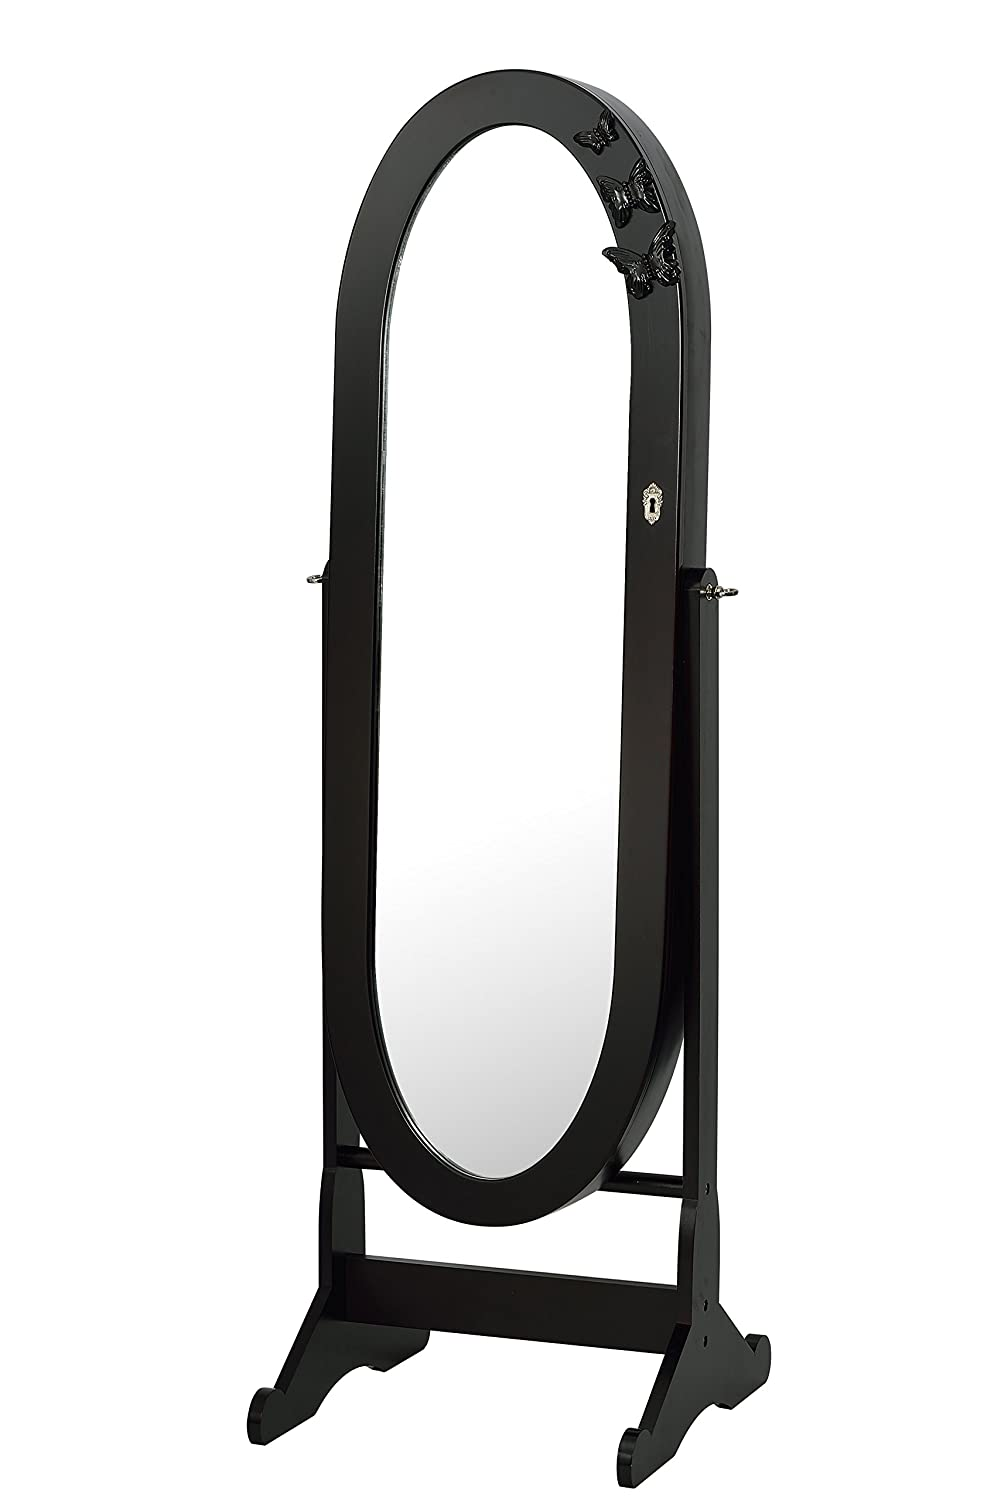 Oval Mirrored Jewelry Cabinet Armoire Stand, Mirror, Necklaces, Bracelets, Rings DARK BROWN ViscoLogic